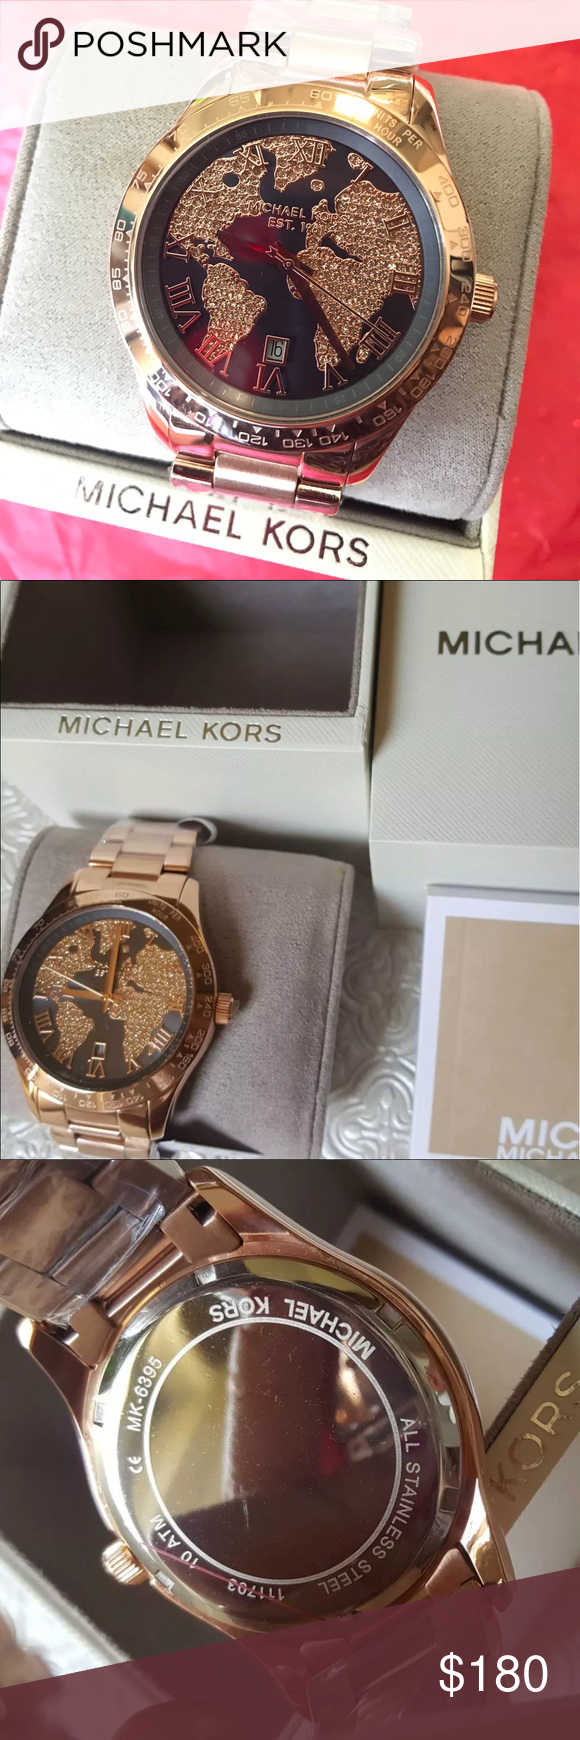 Nwt michael kors glitz world map watch rose gold nwt map watch nwt michael kors glitz world map watch rose gold last one brand new with tag gumiabroncs Images